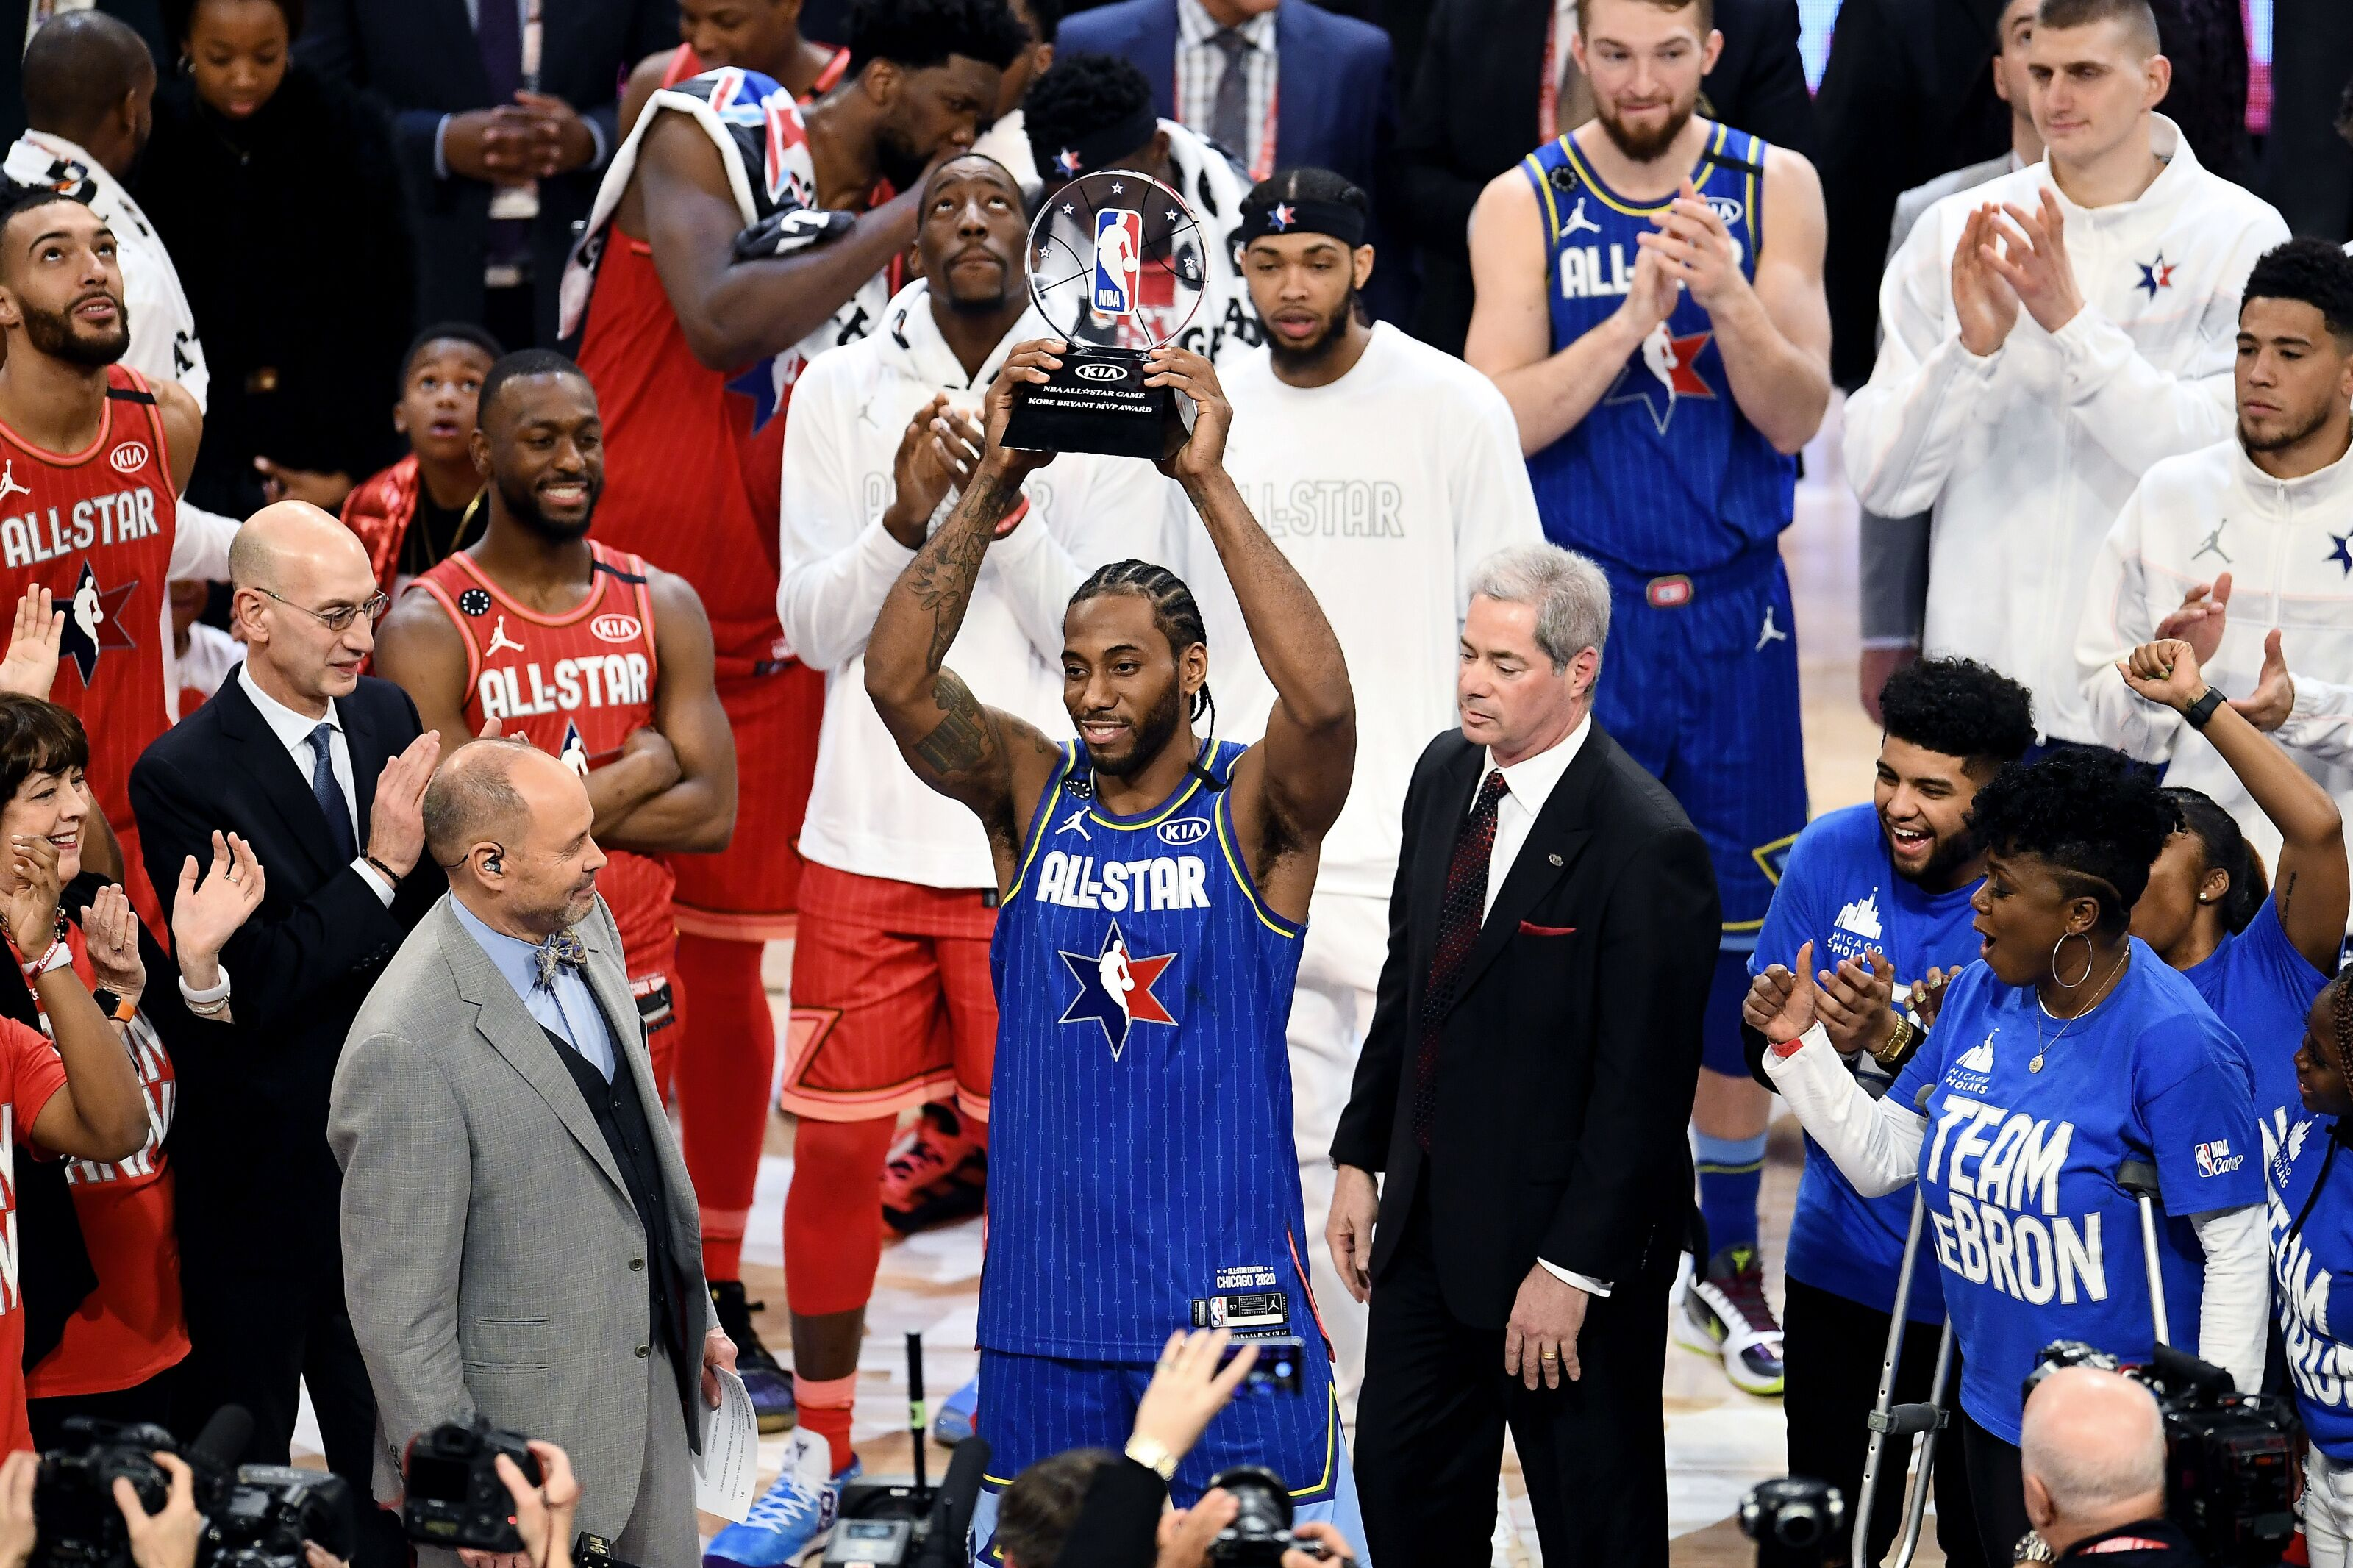 LA Clippers' Kawhi Leonard named NBA All-Star Game Kobe Bryant MVP